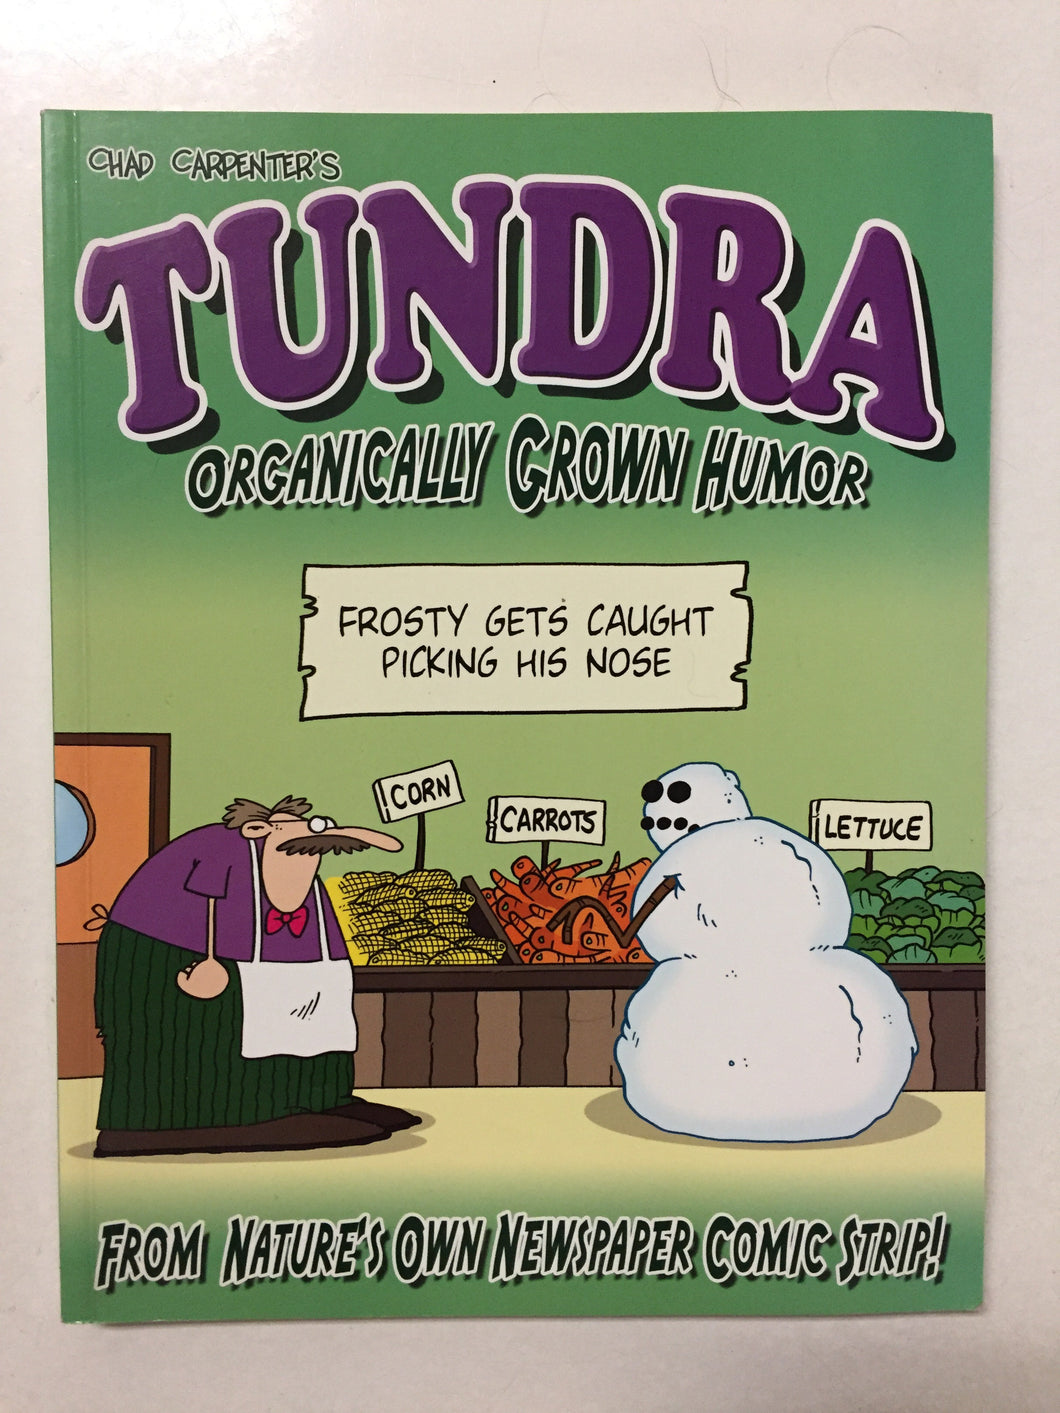 Tundra Organically Grown Humor - Slickcatbooks